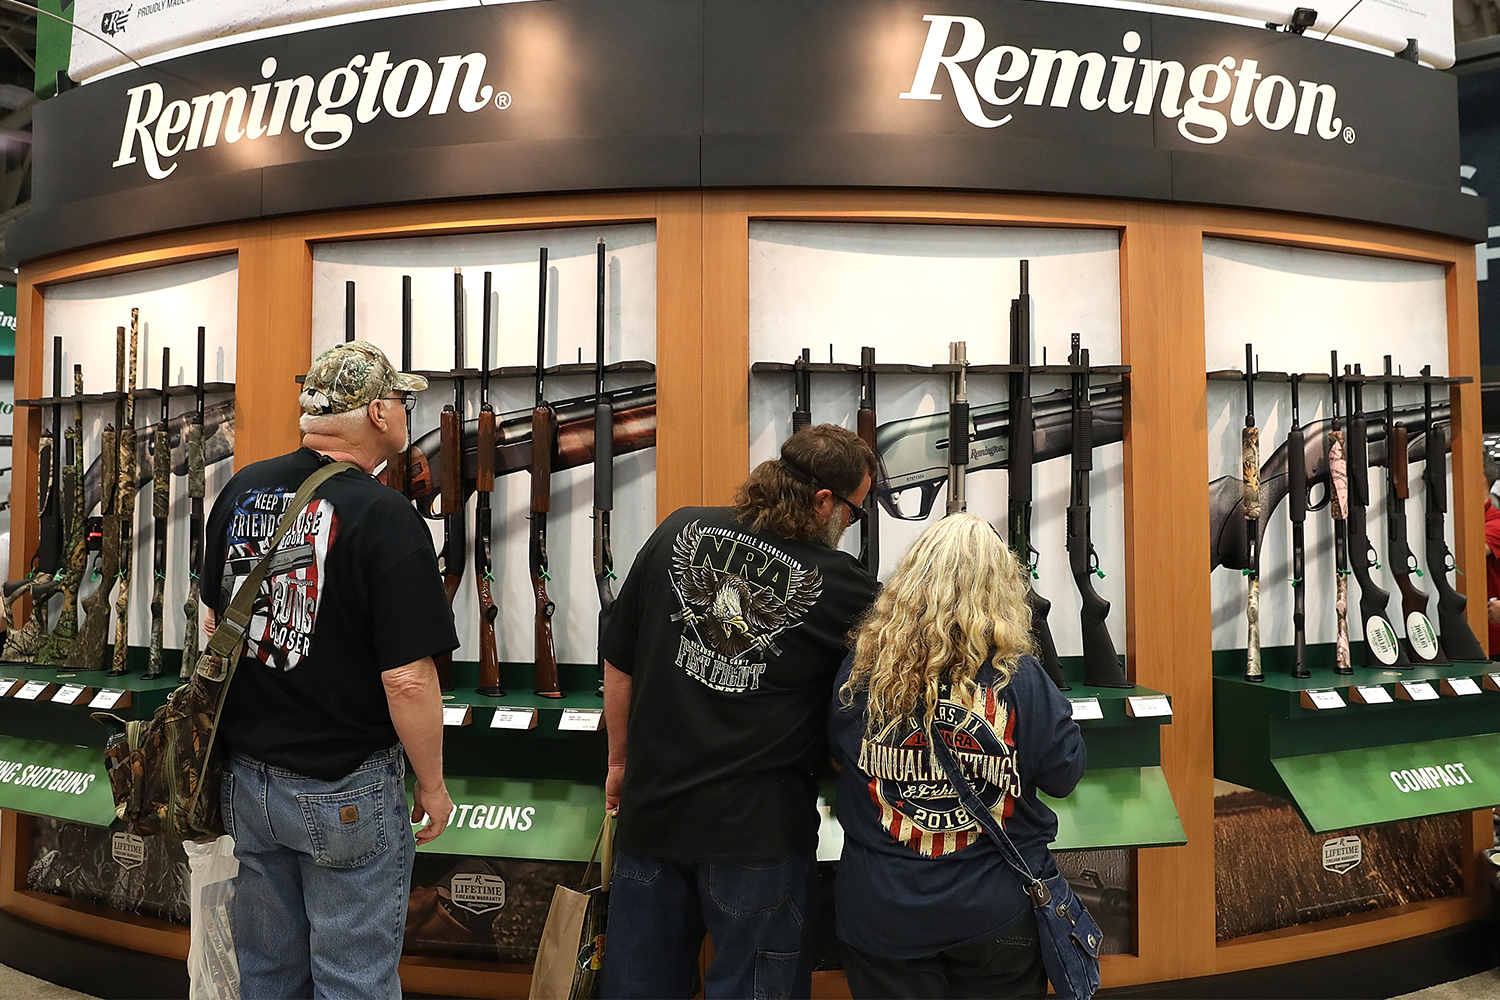 A Remington shotgun display at the annual NRA meeting in 2018